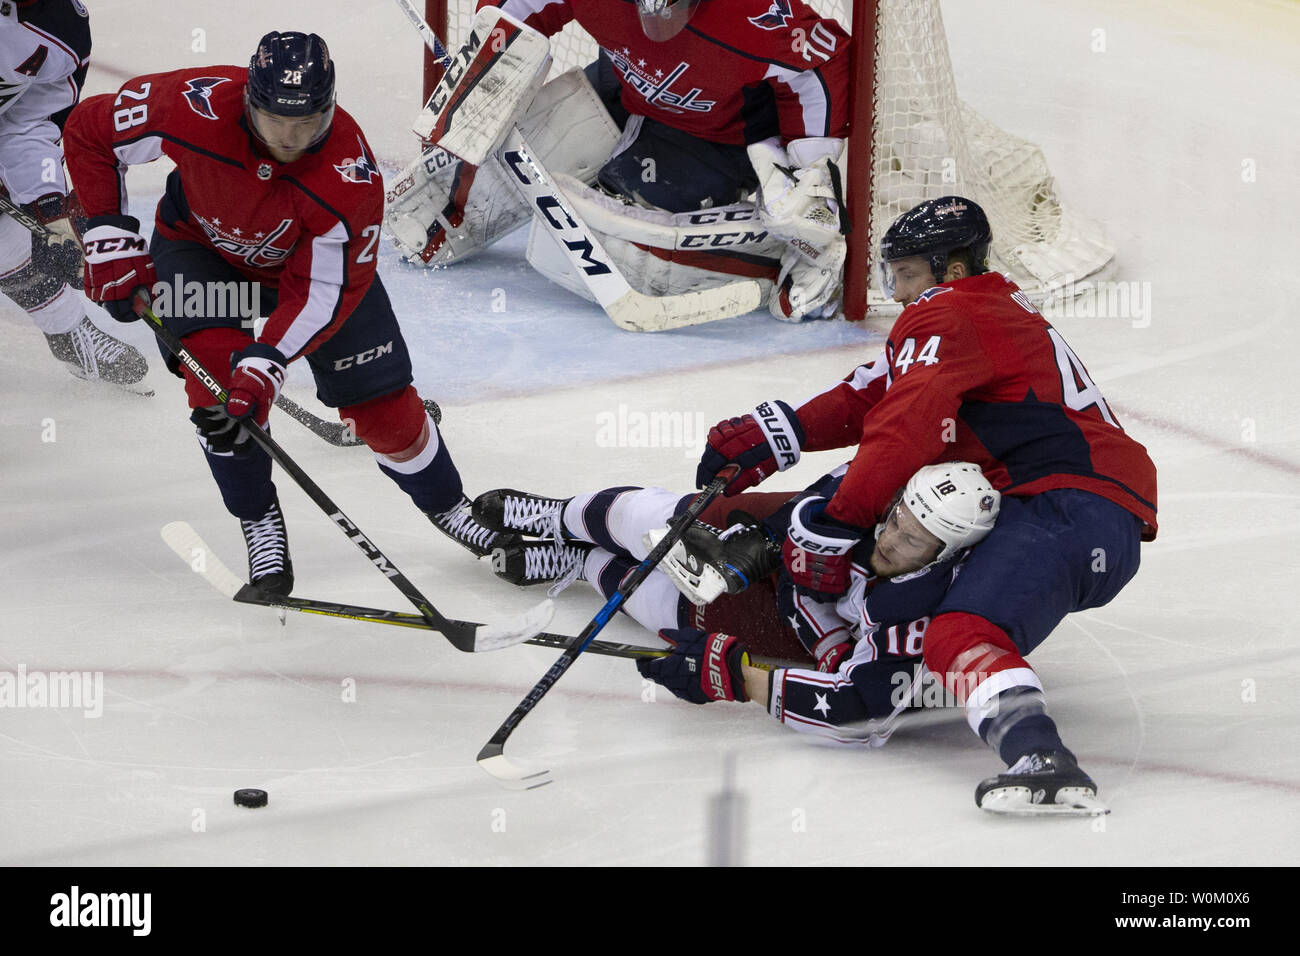 Capitals defenseman Jakub Jerabek (28) skates for a loose puck while Capitals defenseman Brooks Orpik (44) checks Blue Jackets center Pierre-Luc Dubois (18) during the first round NHL playoff game between the Columbus Blue Jackets and Washington Capitals at Capital One Arena in Washington, D.C. on April 15 2018. Photo by Alex Edelman/UPI Stock Photo